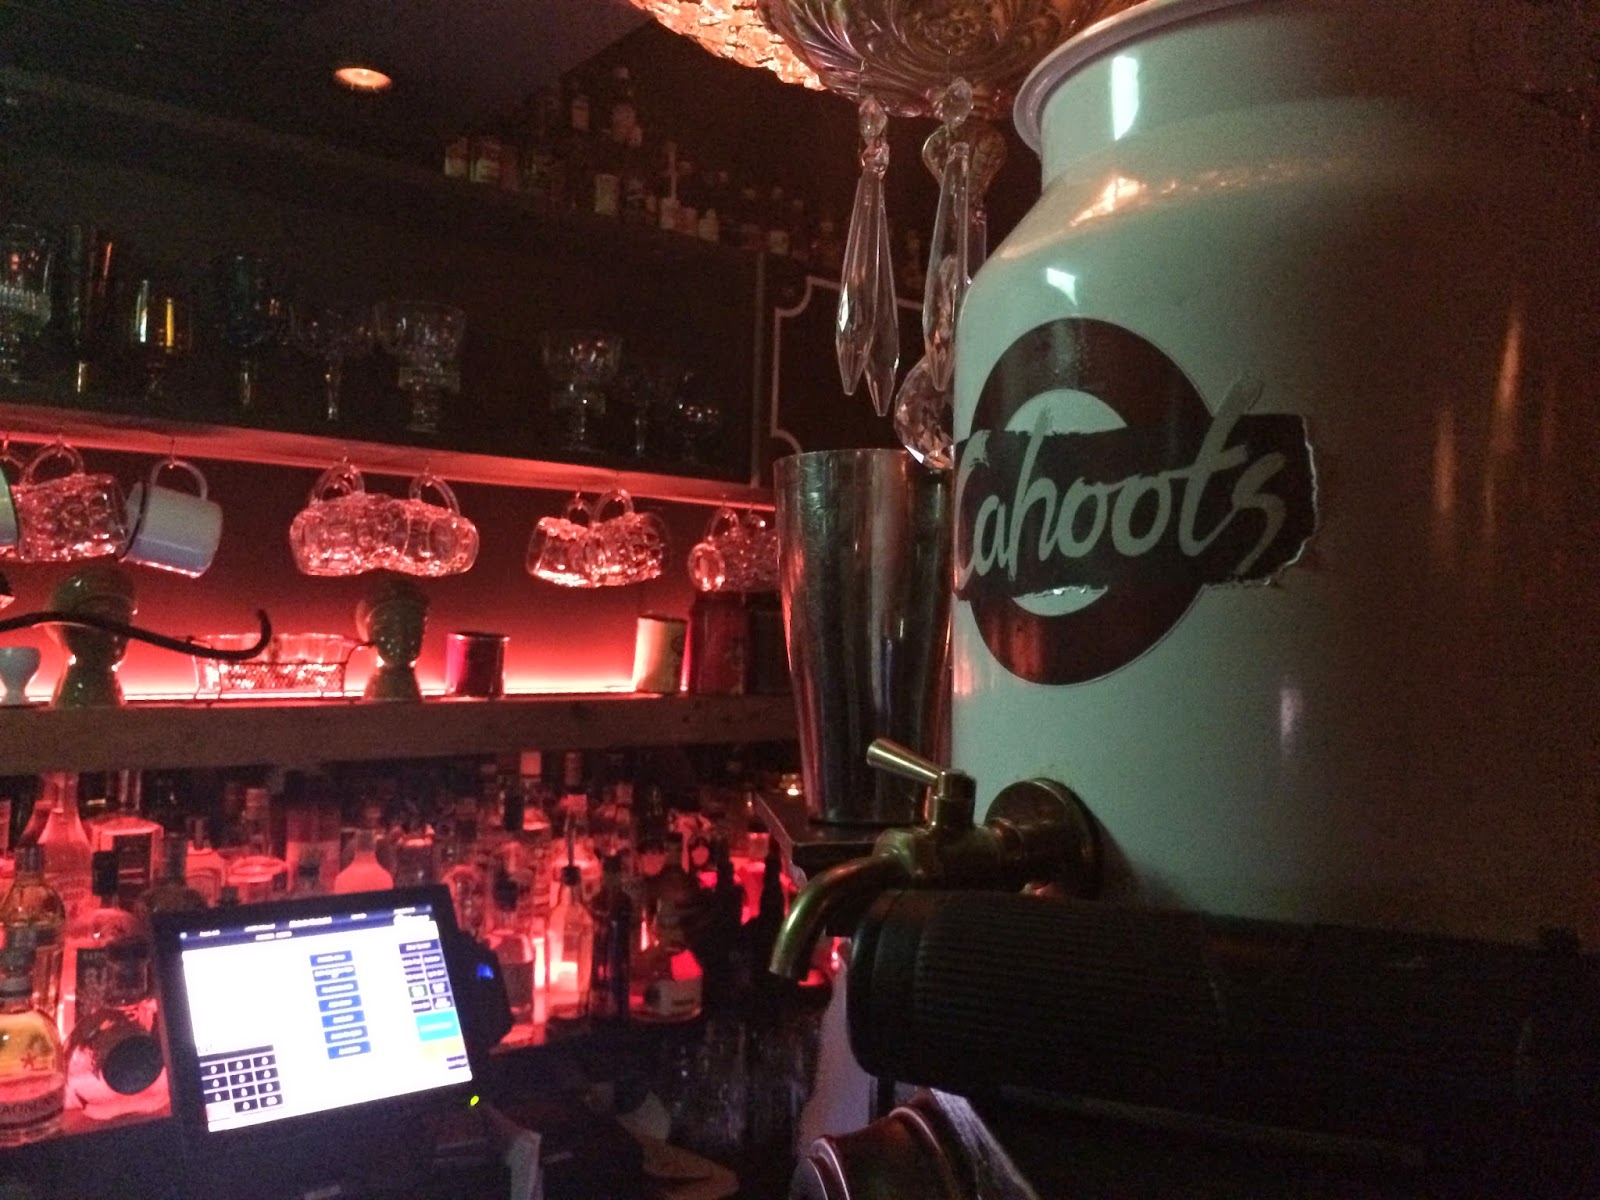 Cahoots - Secret Underground bar